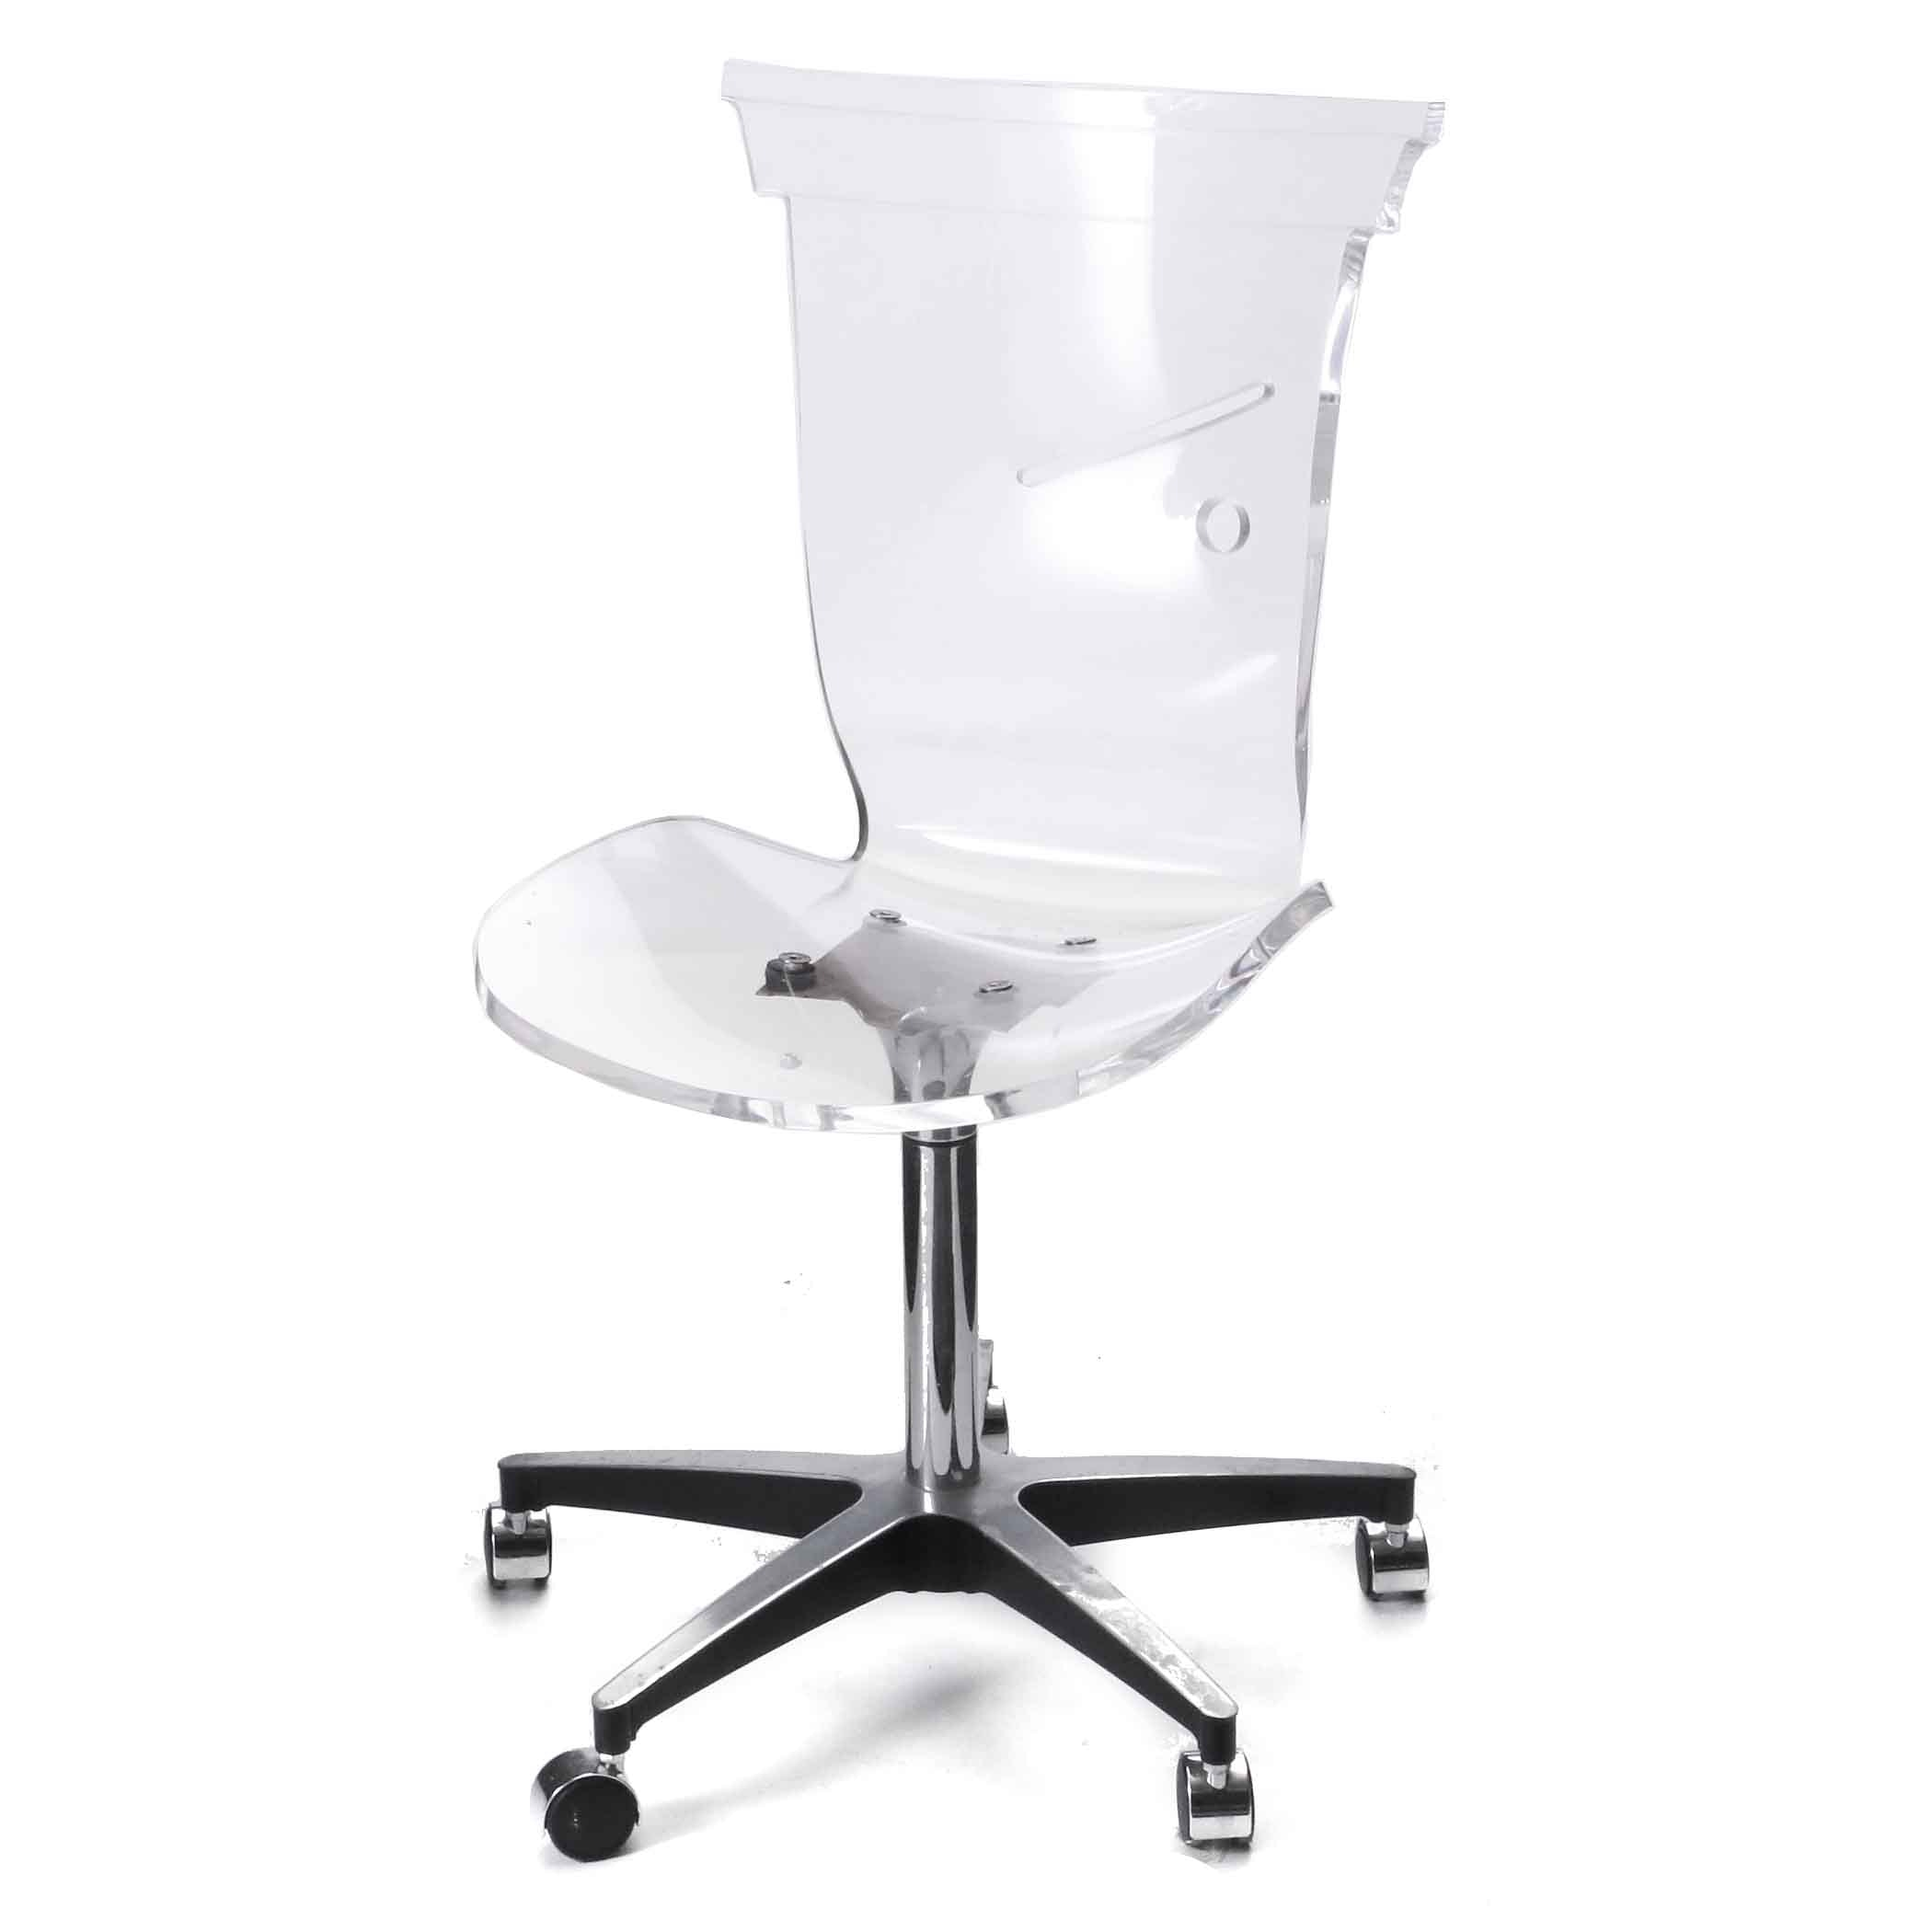 Acrylic office chairs Lucite Global Sources Molded Acrylic Office Chair On Fiveleg Base Ebth